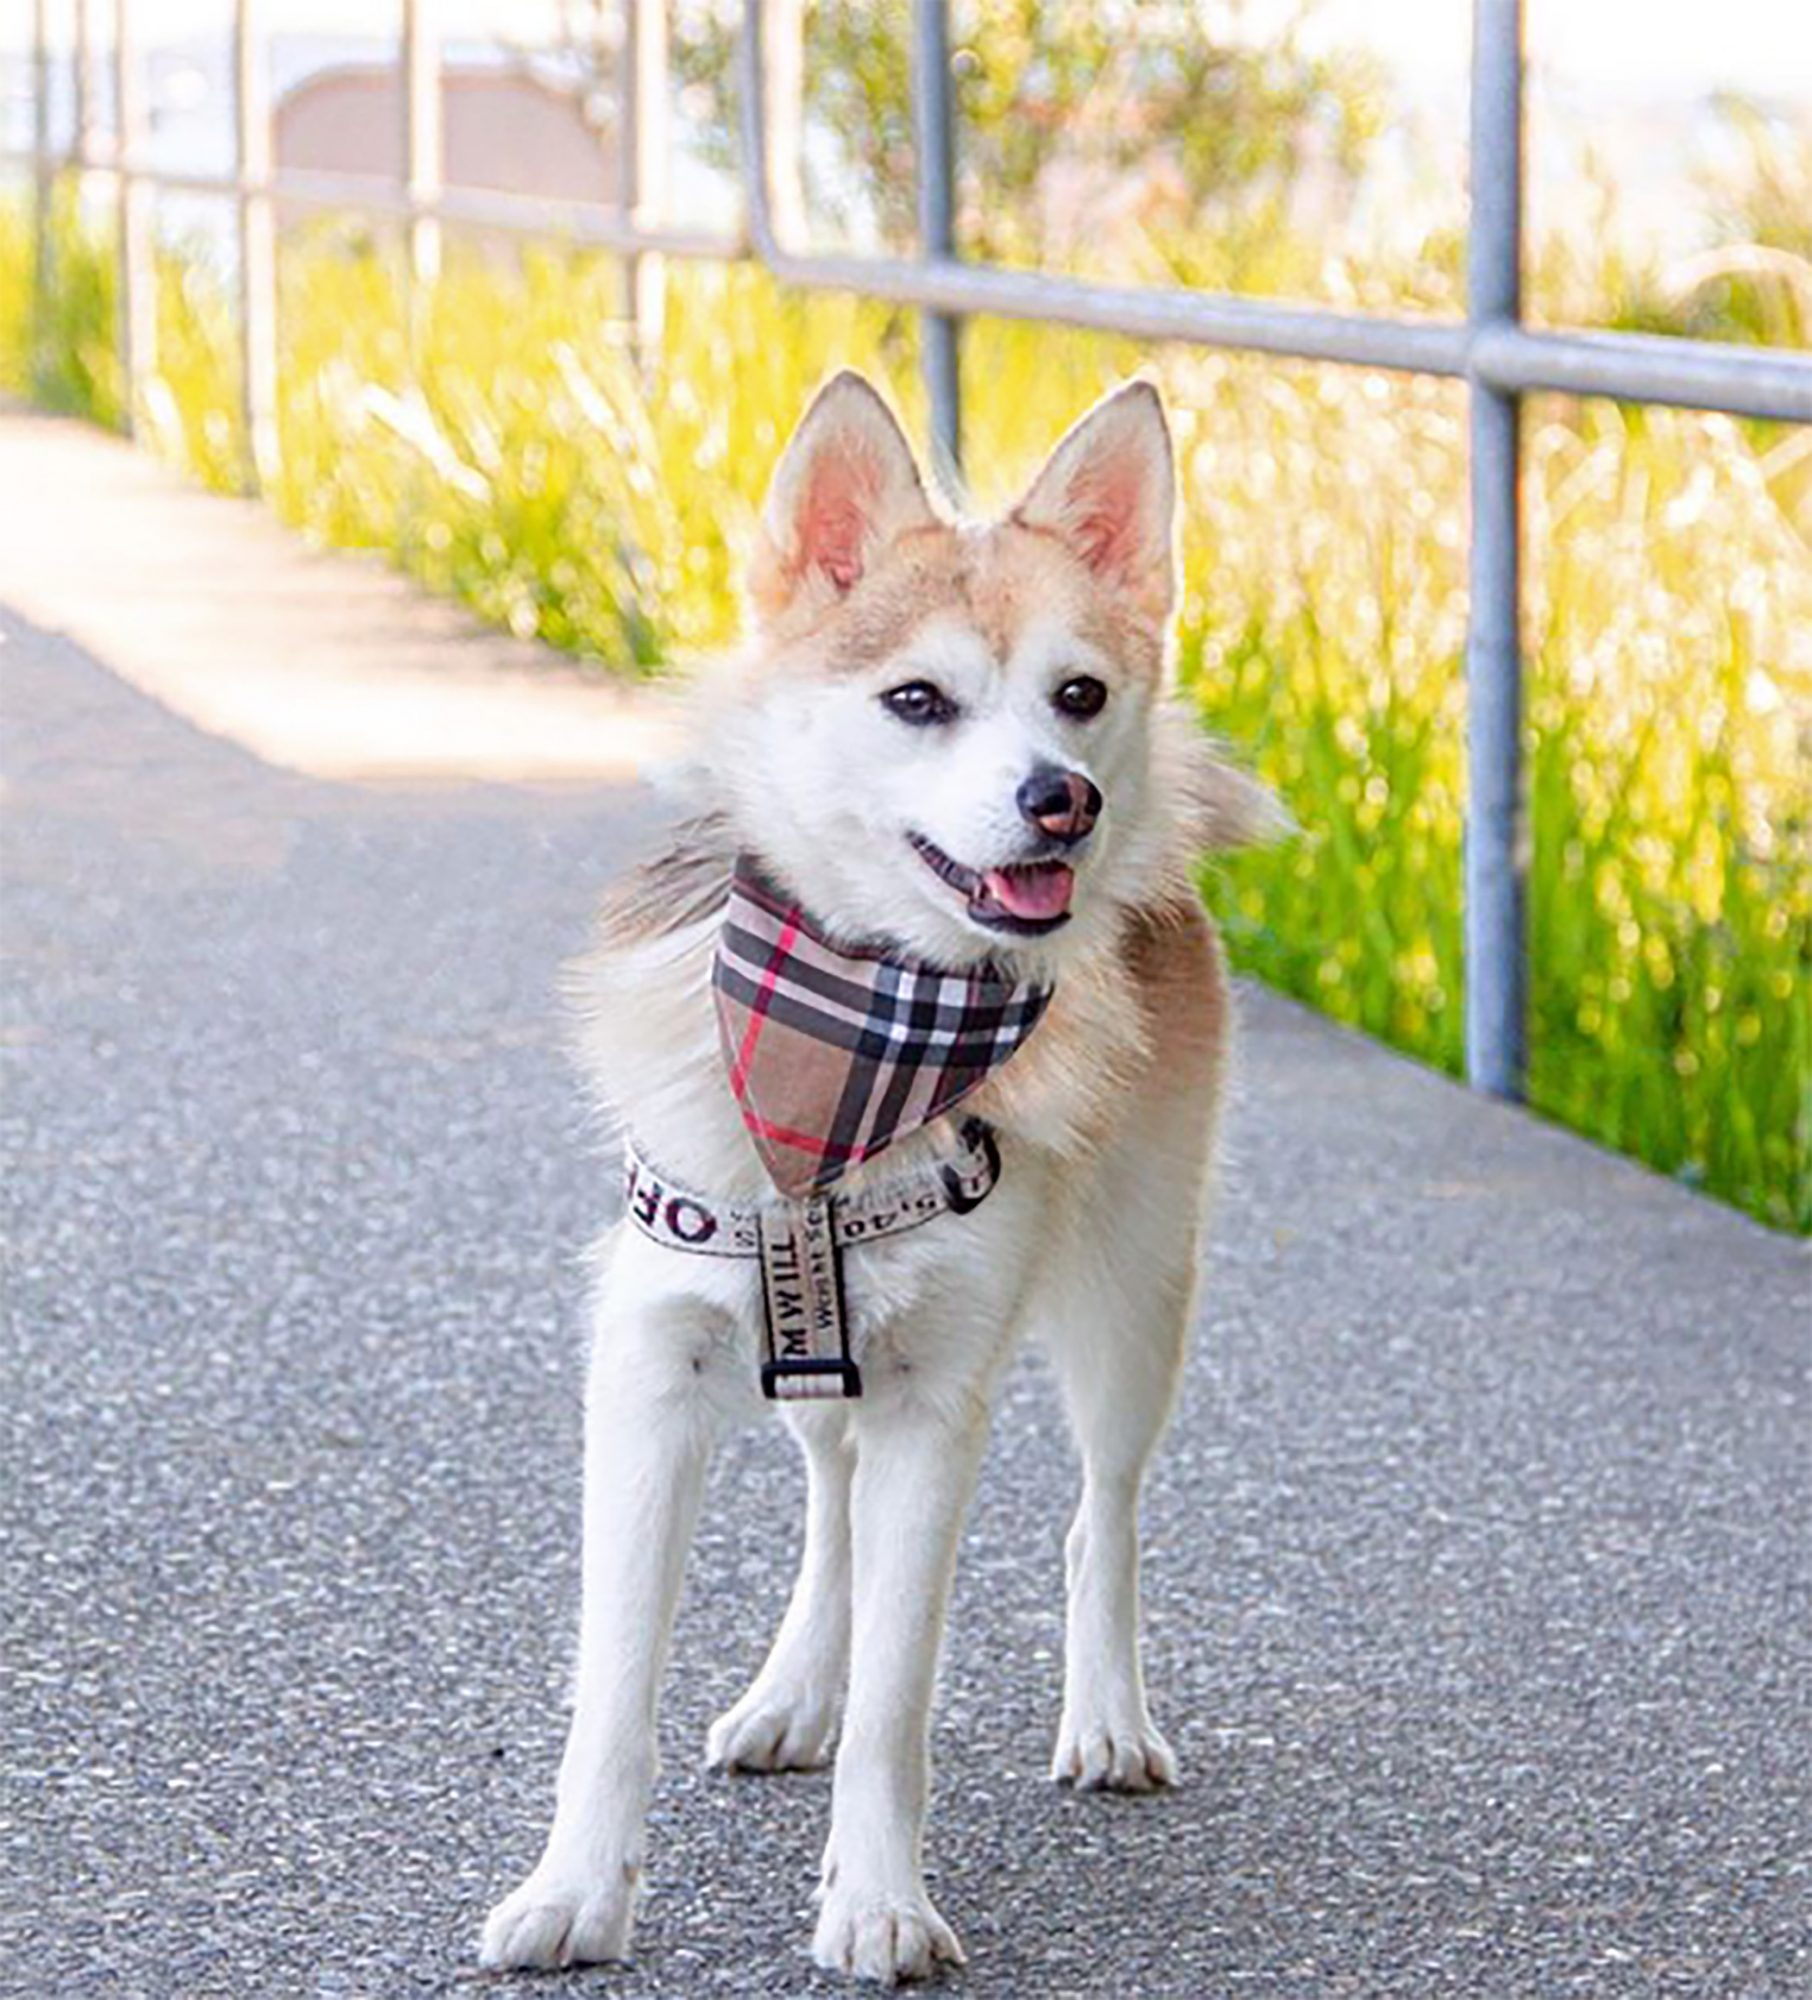 Pomsky with Husky body and Pomeranian face and coloring